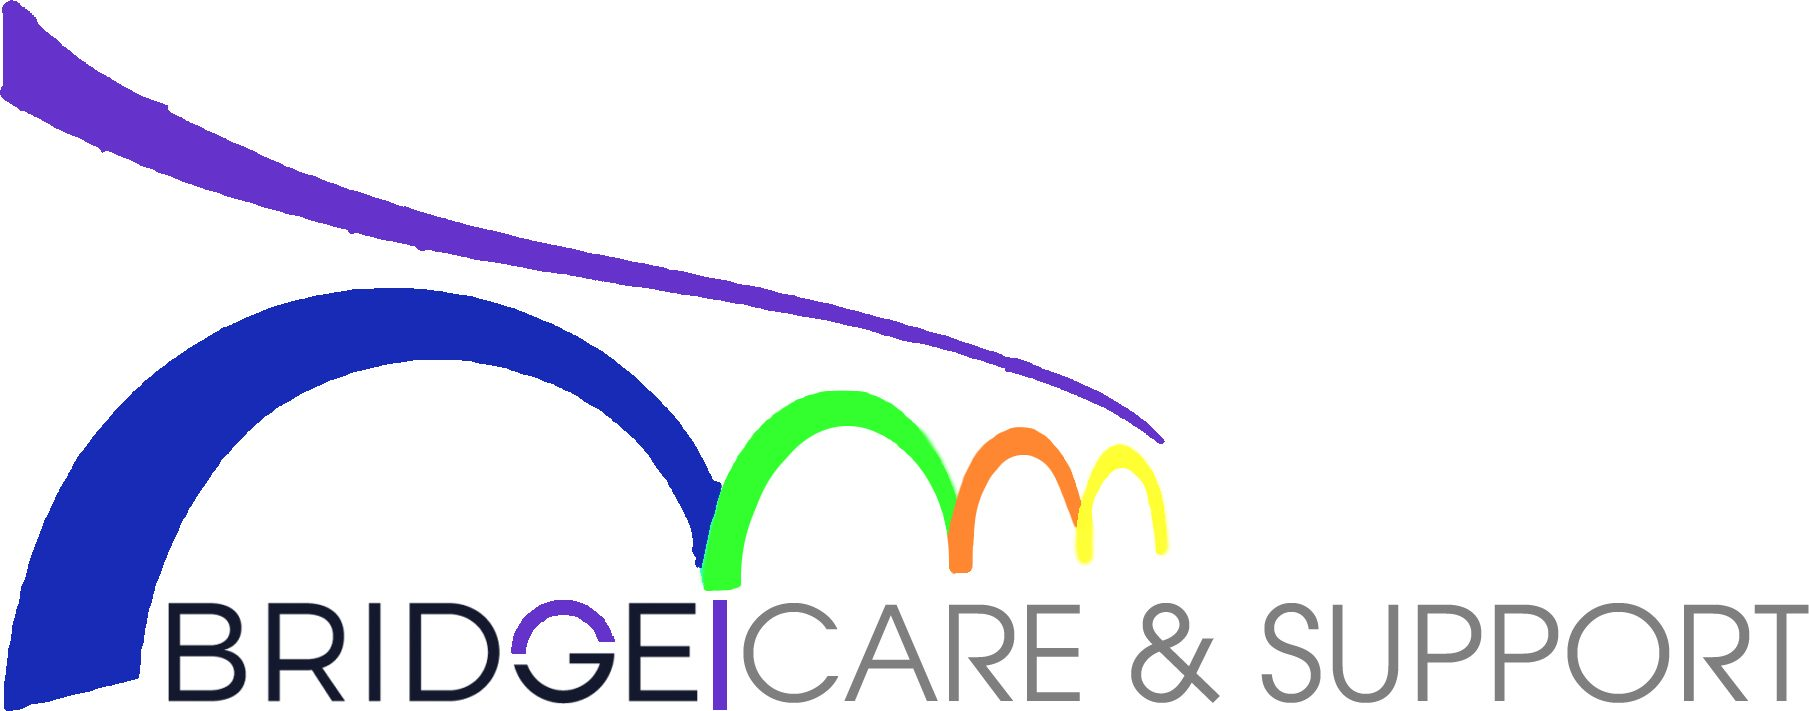 Bridge Care & Support